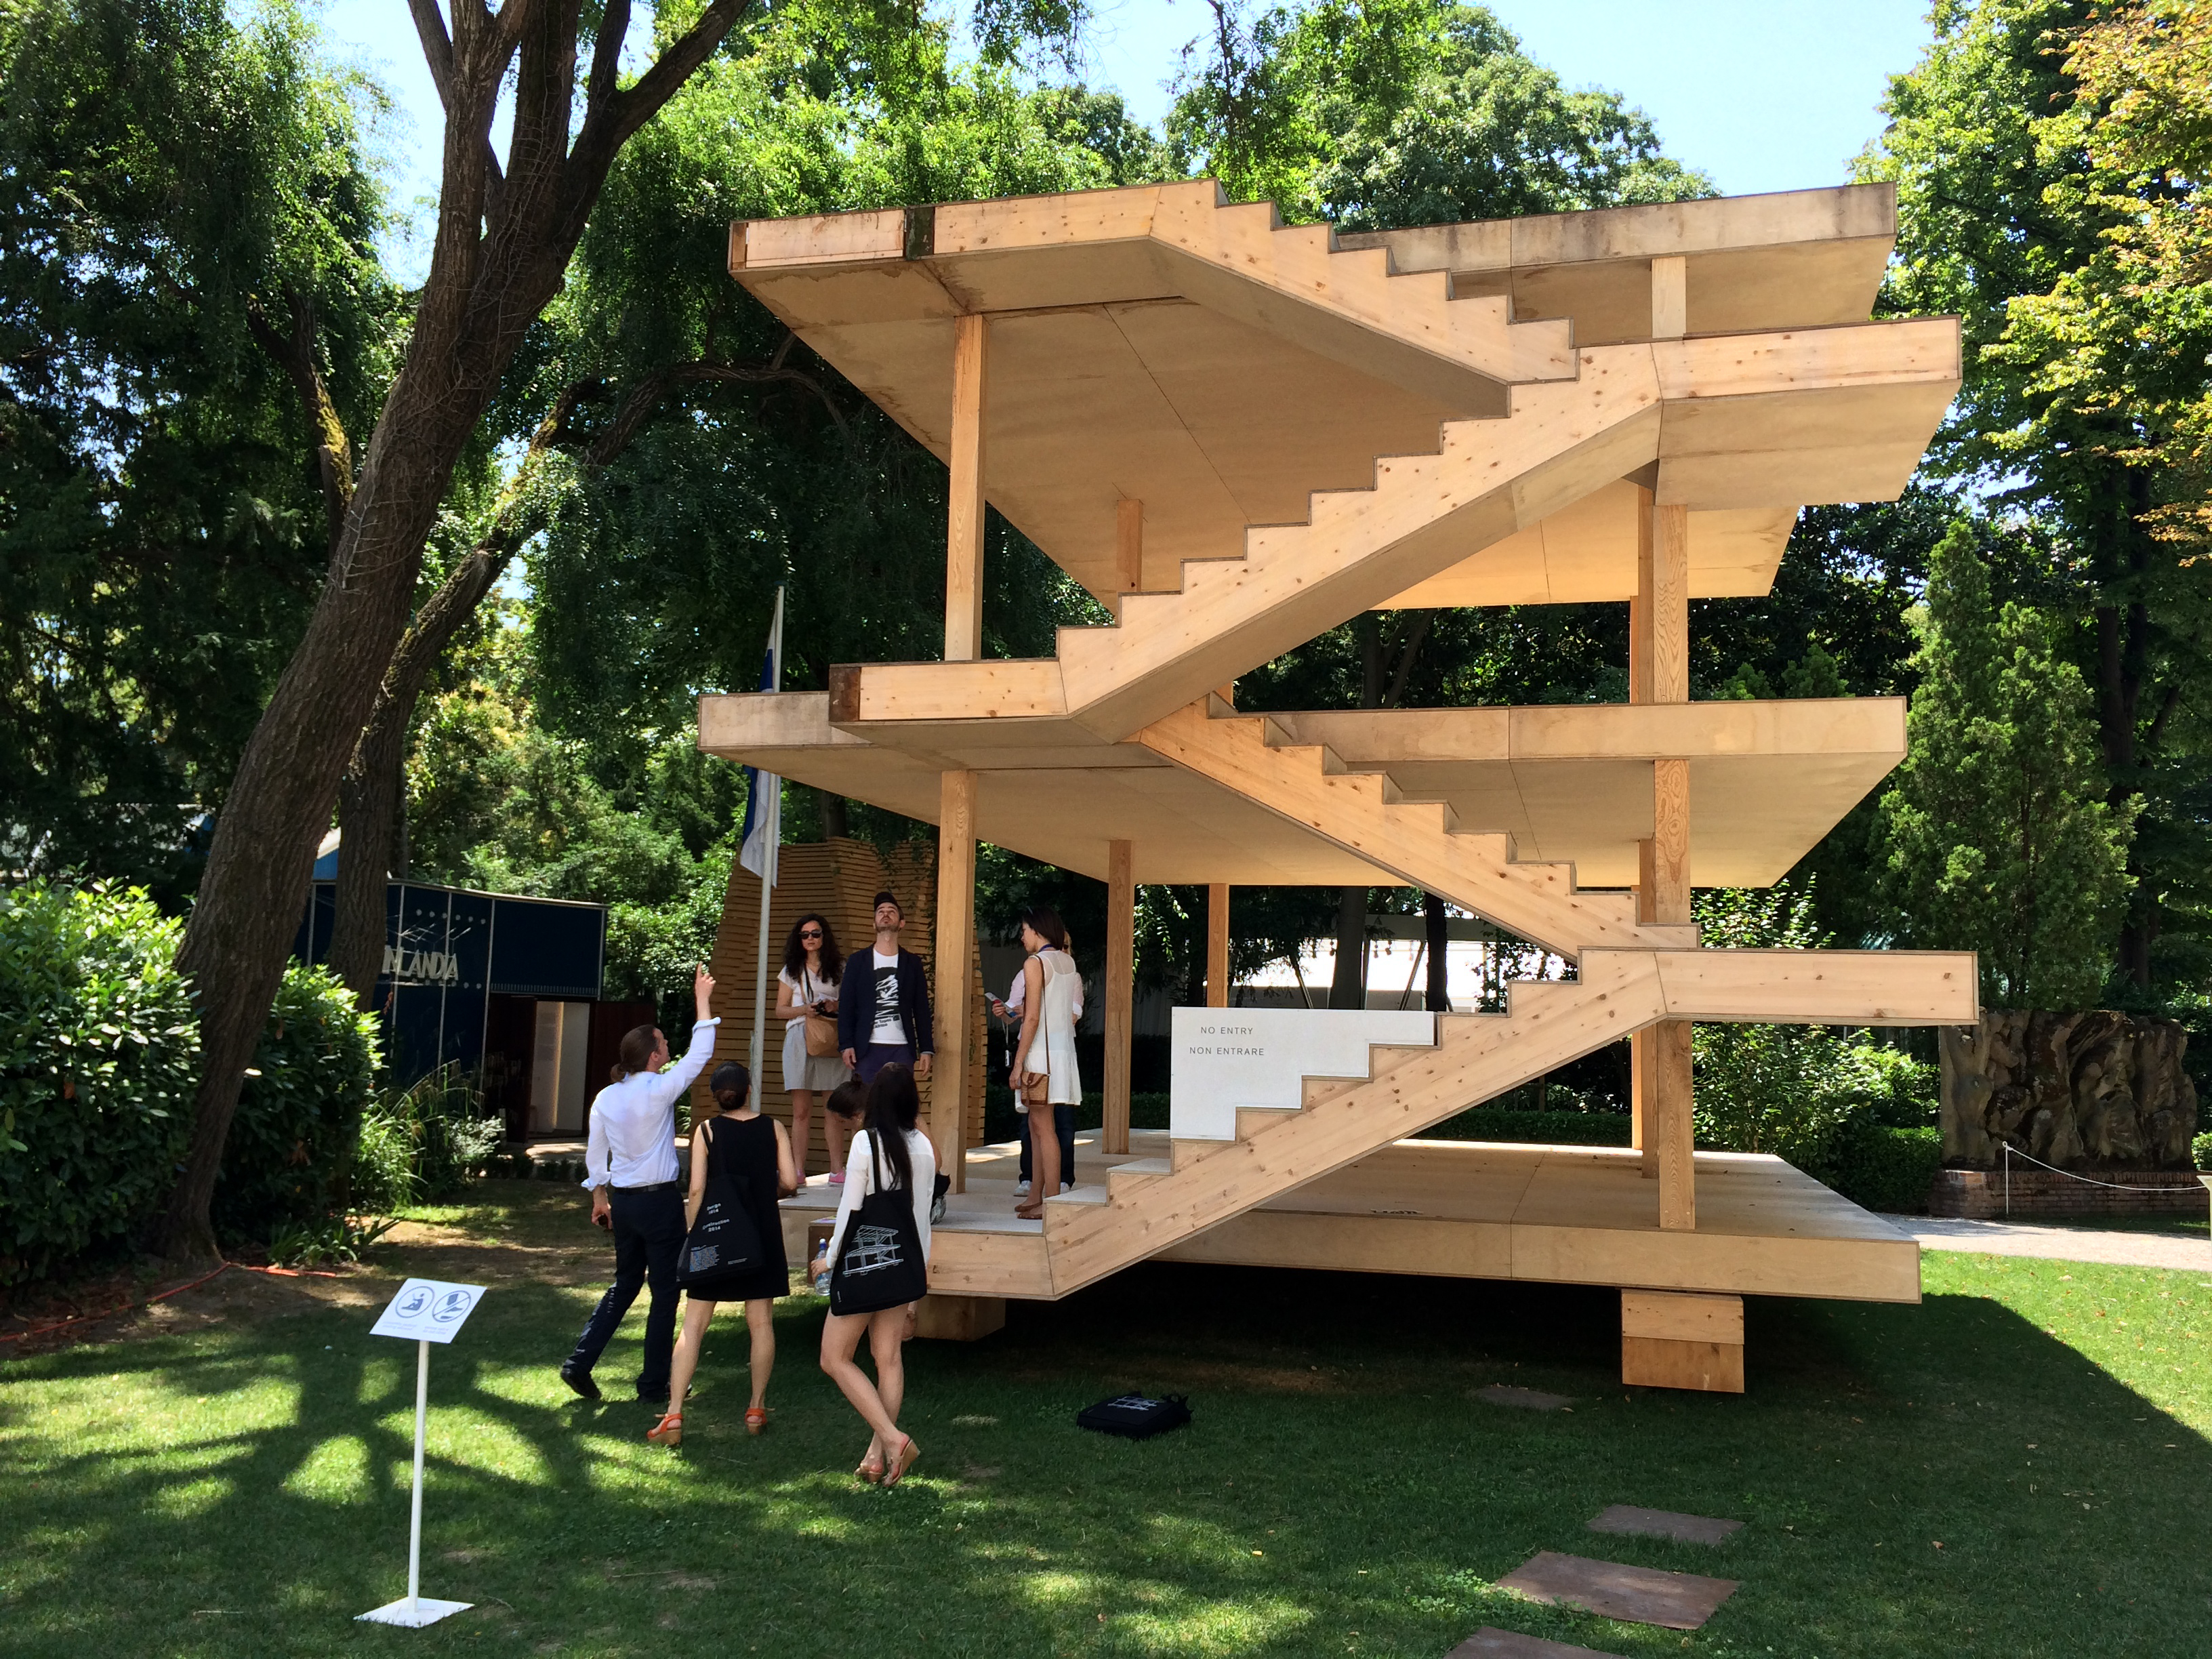 Le corbusiers domino house project